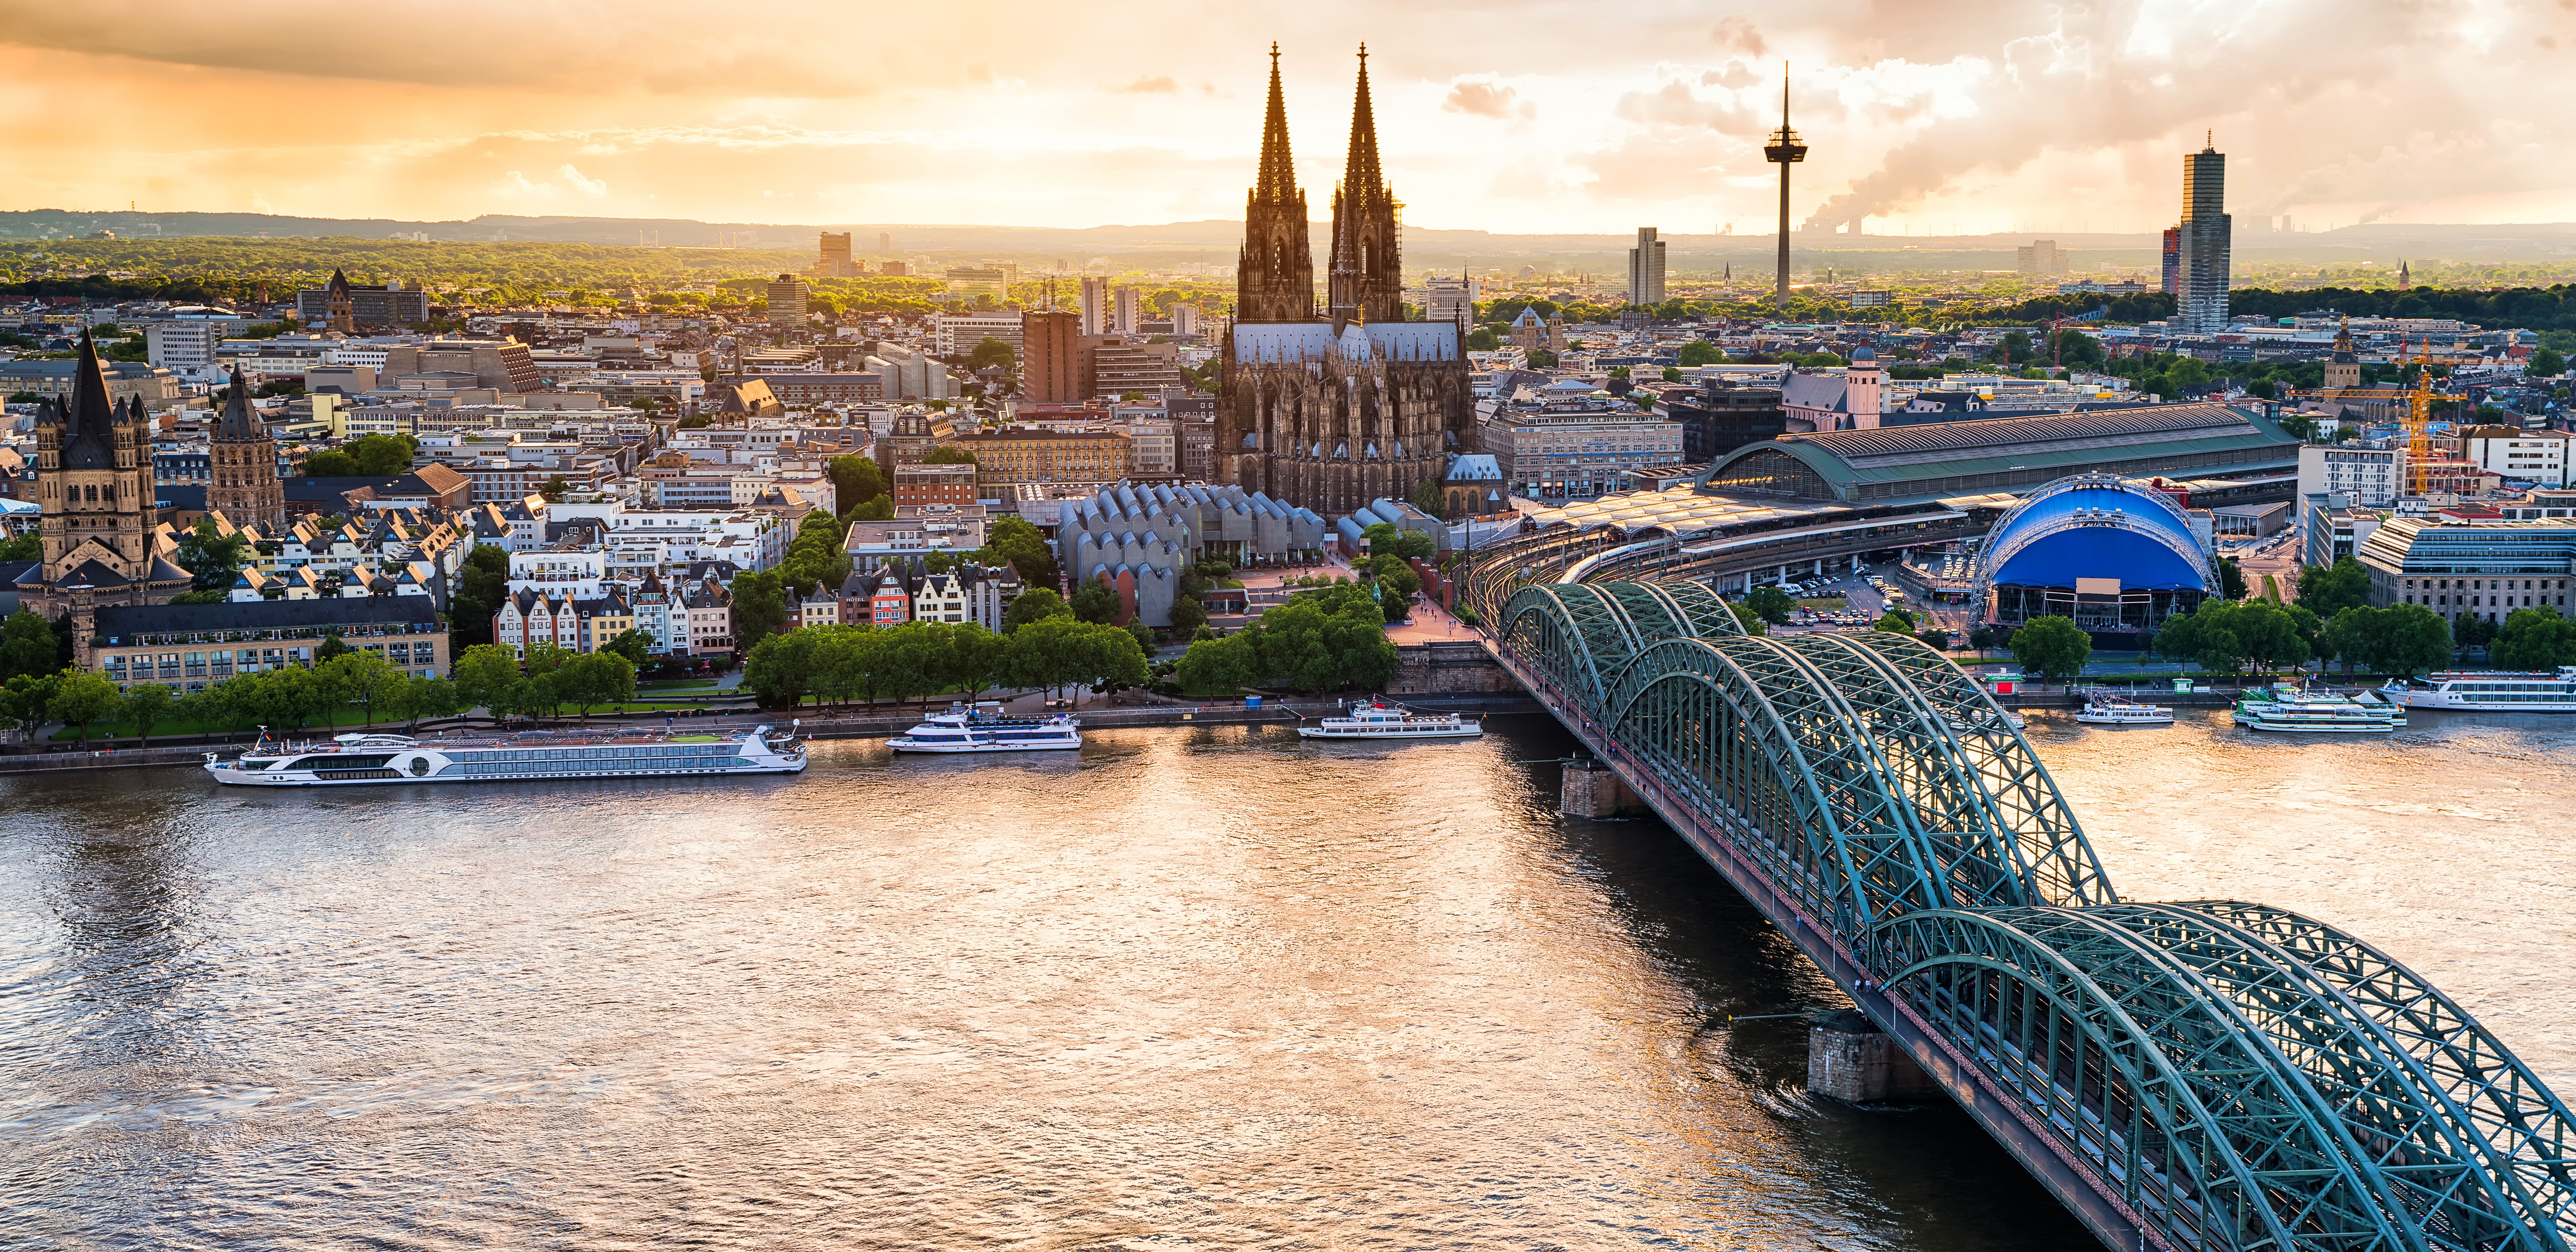 Cologne: The Most Diverse City in Germany